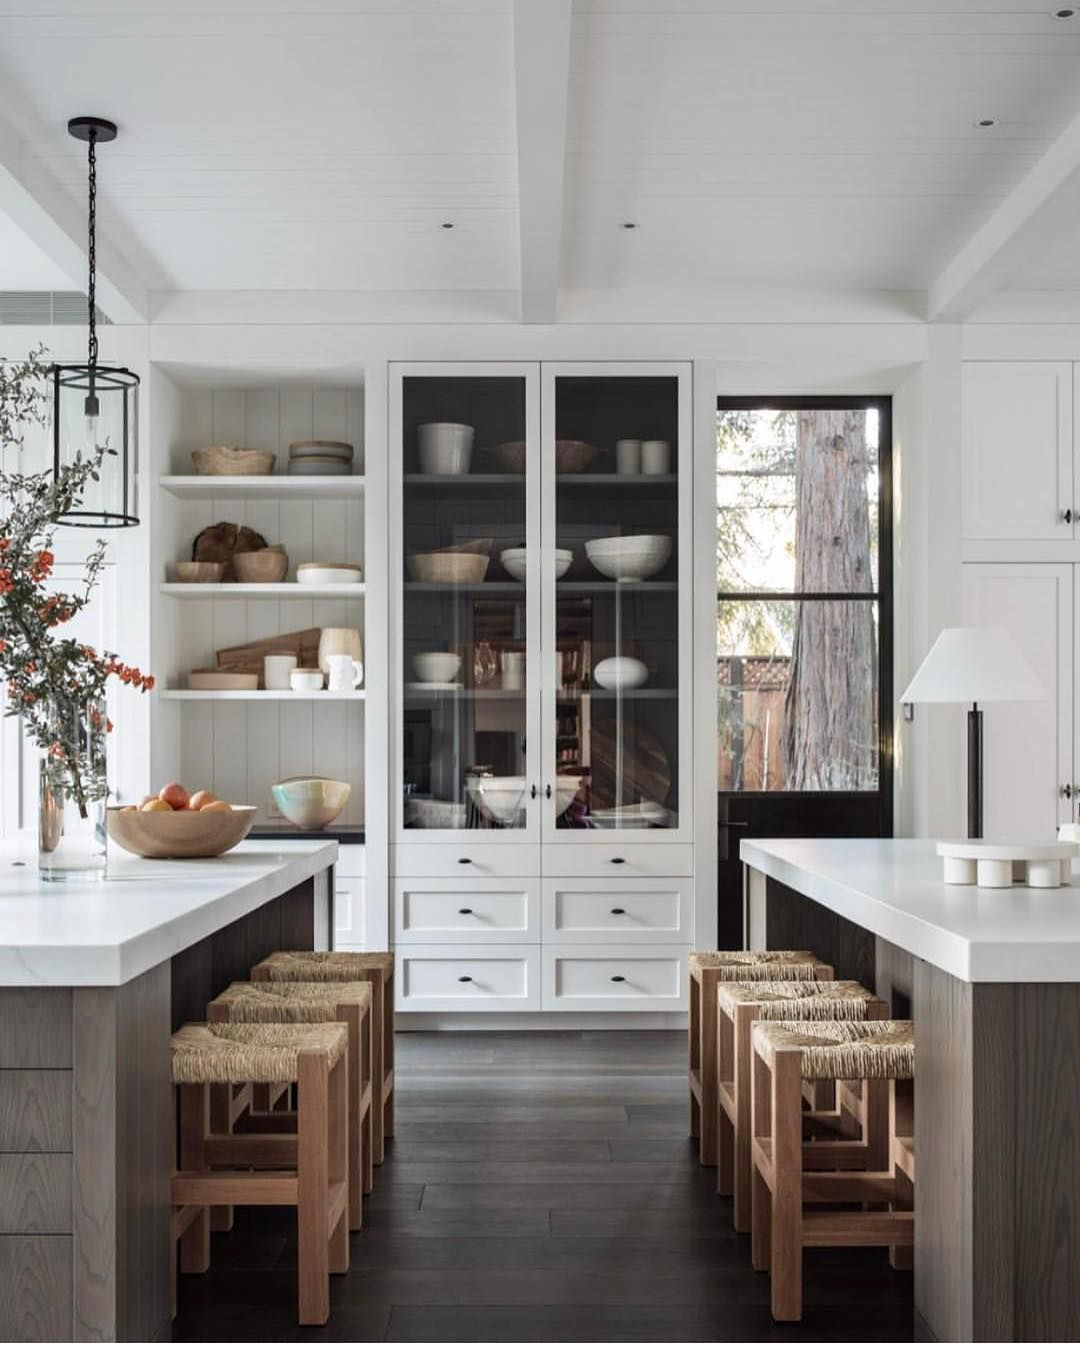 Studio mcgee on instagram this kitchen by m elle design made